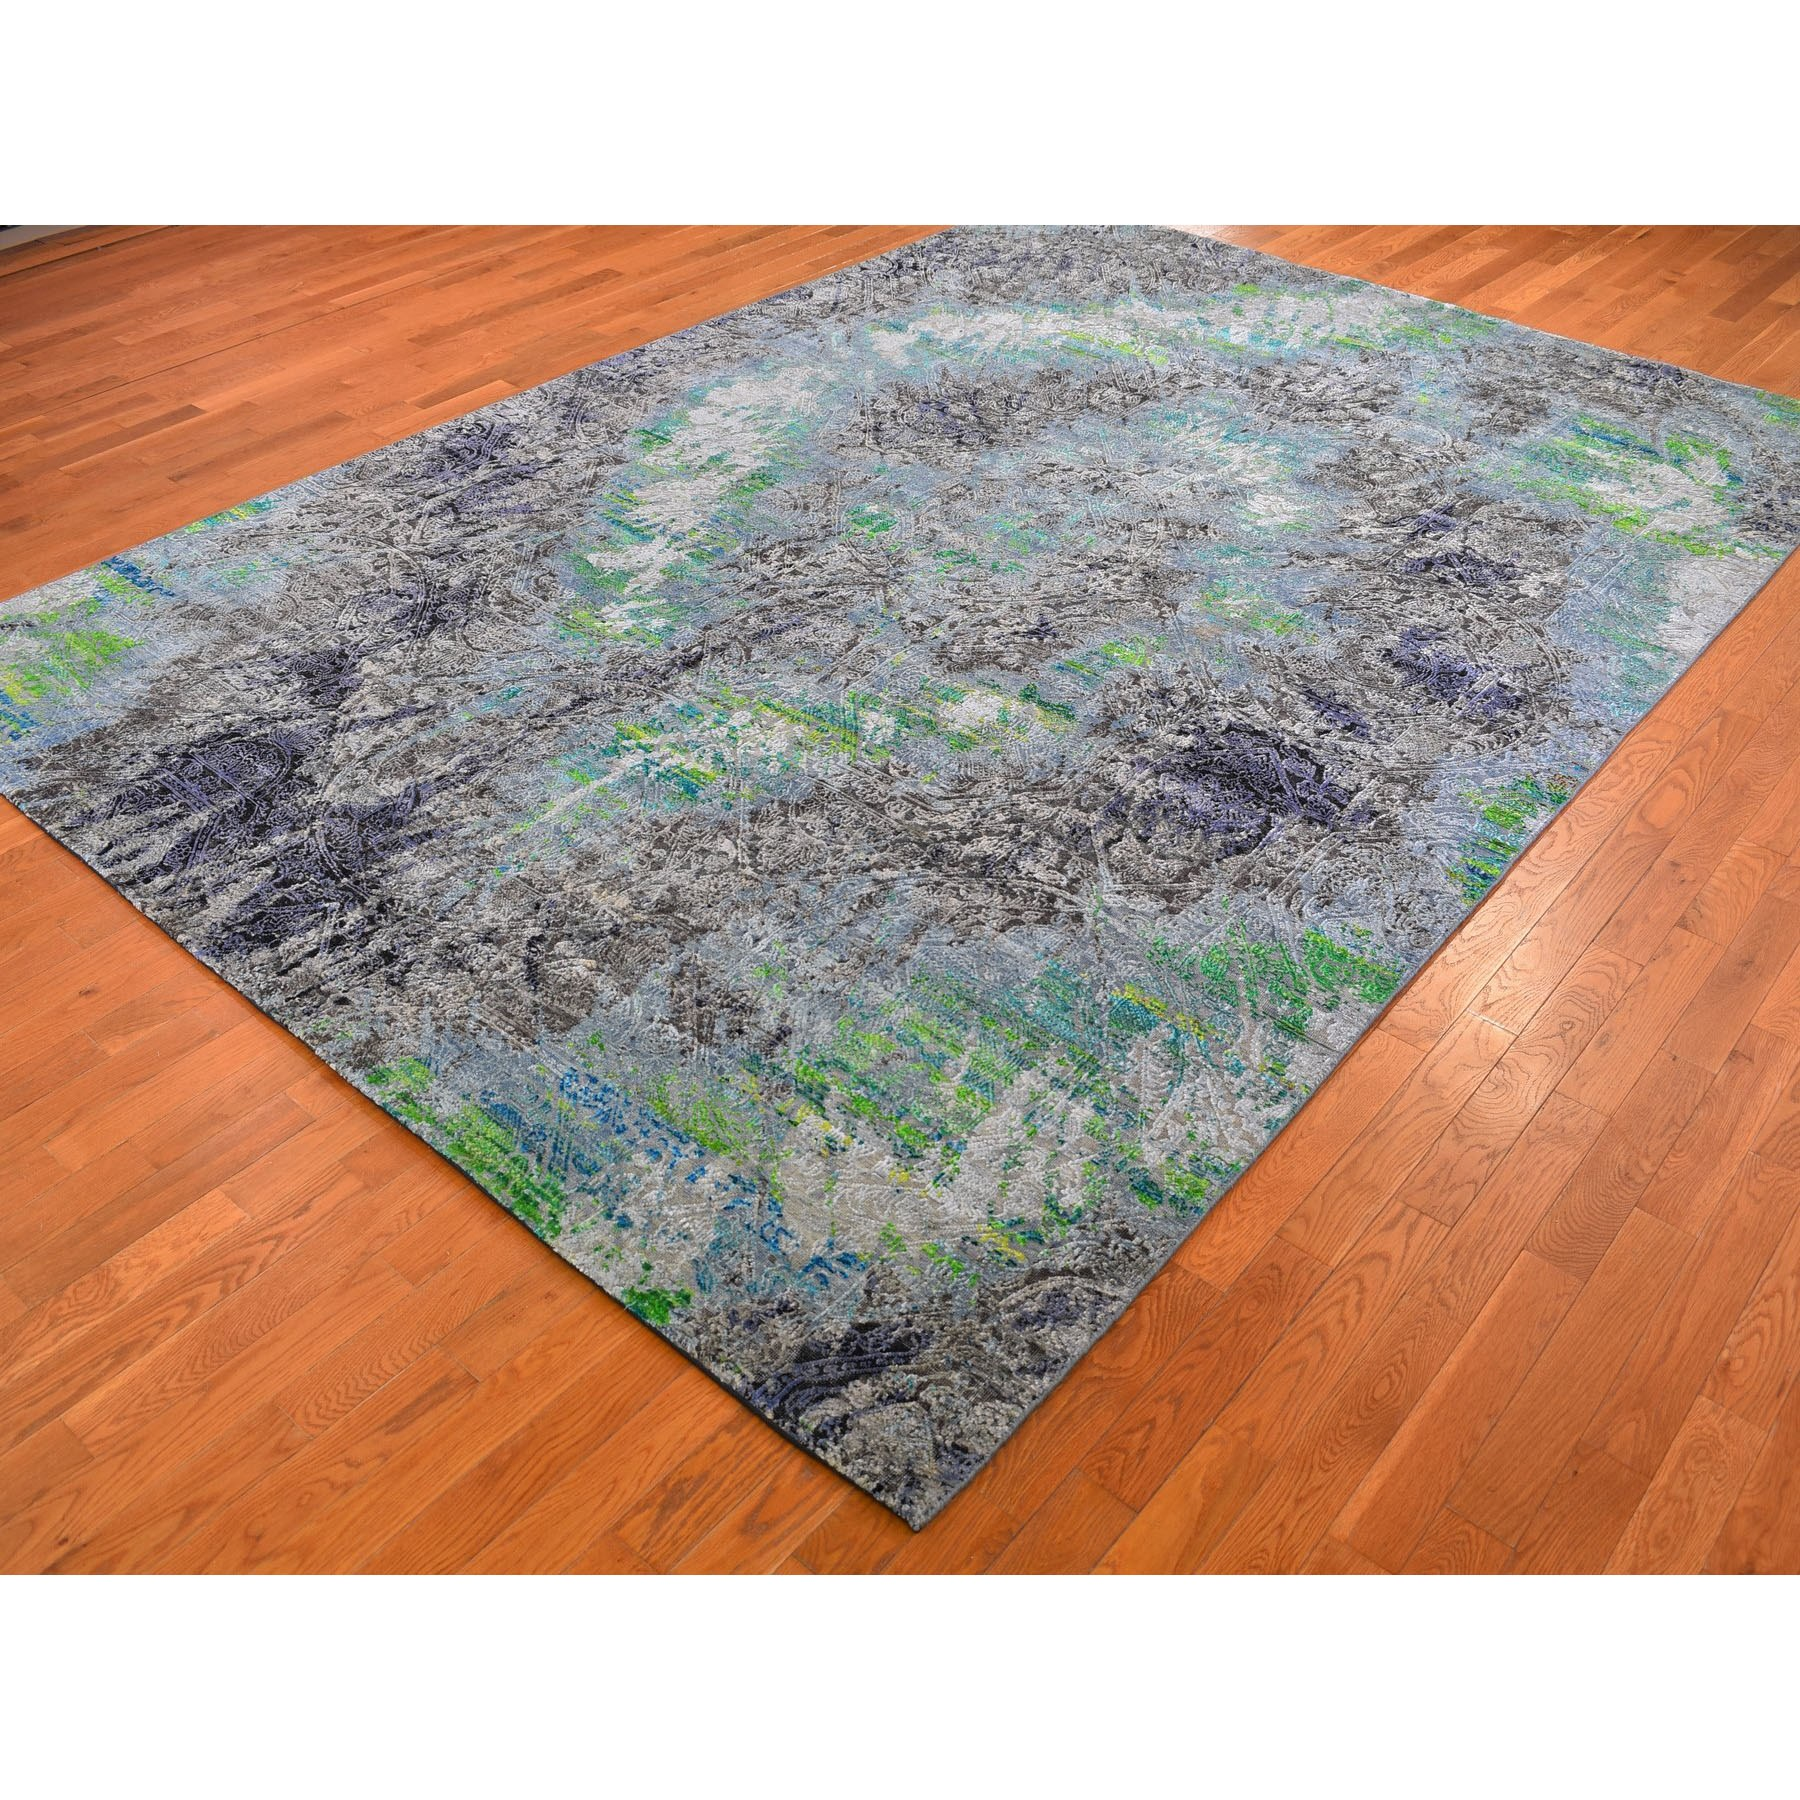 8-10 x12-5  COLORFUL DIMINISHING COINS, Sari Silk with Textured Wool Hand-Knotted Rug